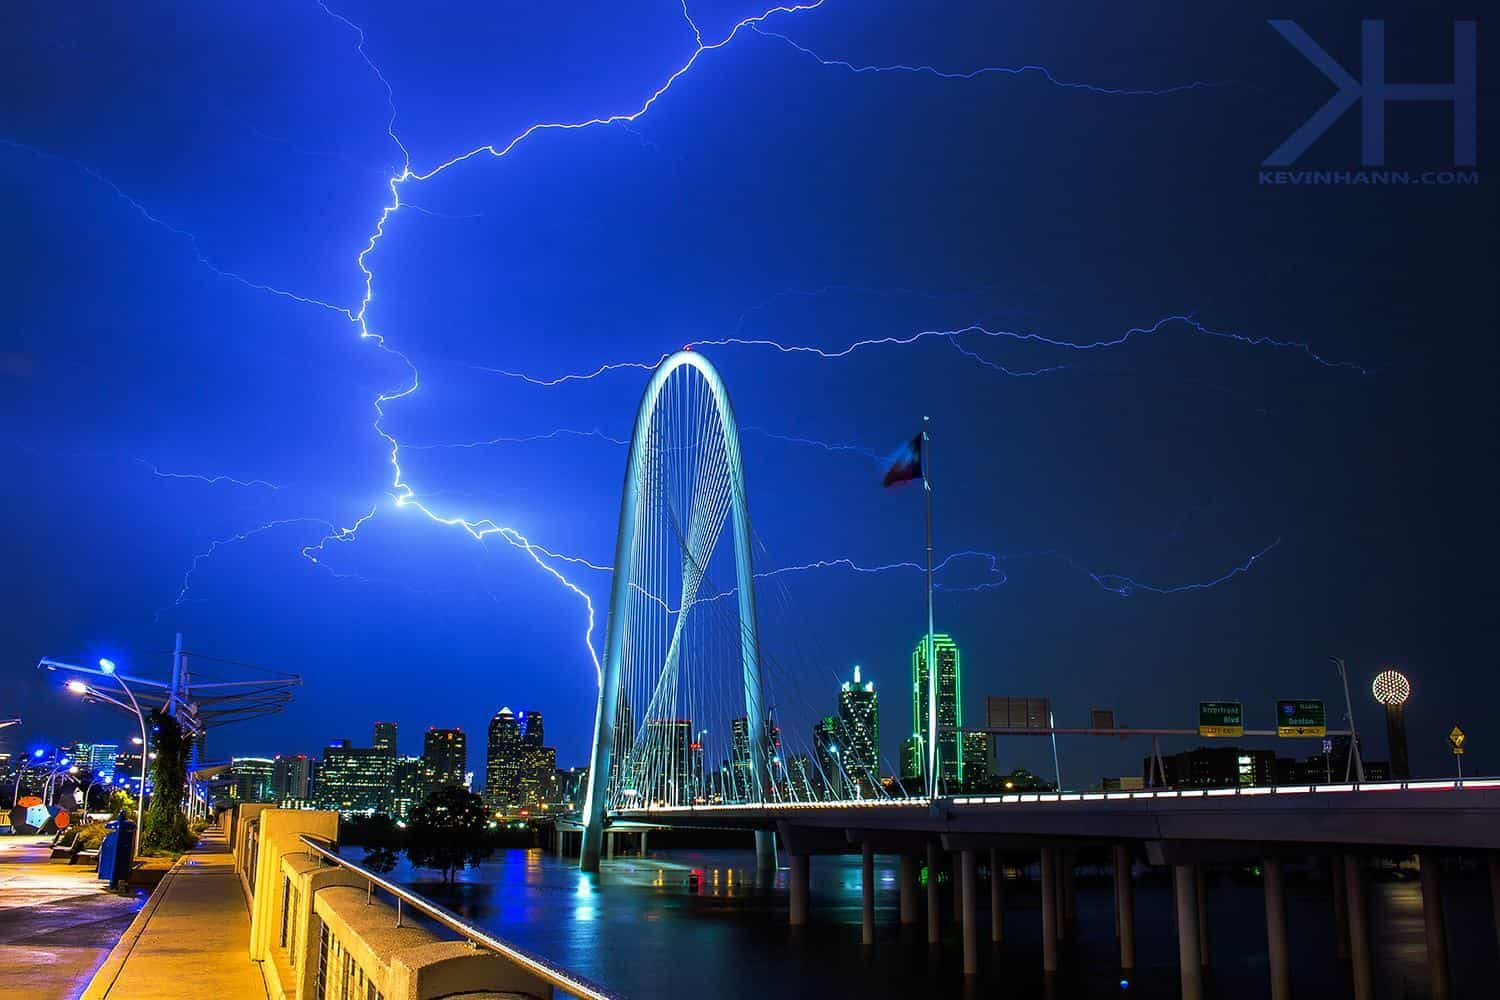 So I started shooting about 4 months when I purchased my very first camera. I got lucky my first month and was able to capture this lightning strike over the bridge. Camera in one hand and umbrella in the other. Figured I'd share this incase I hadn't already done so...